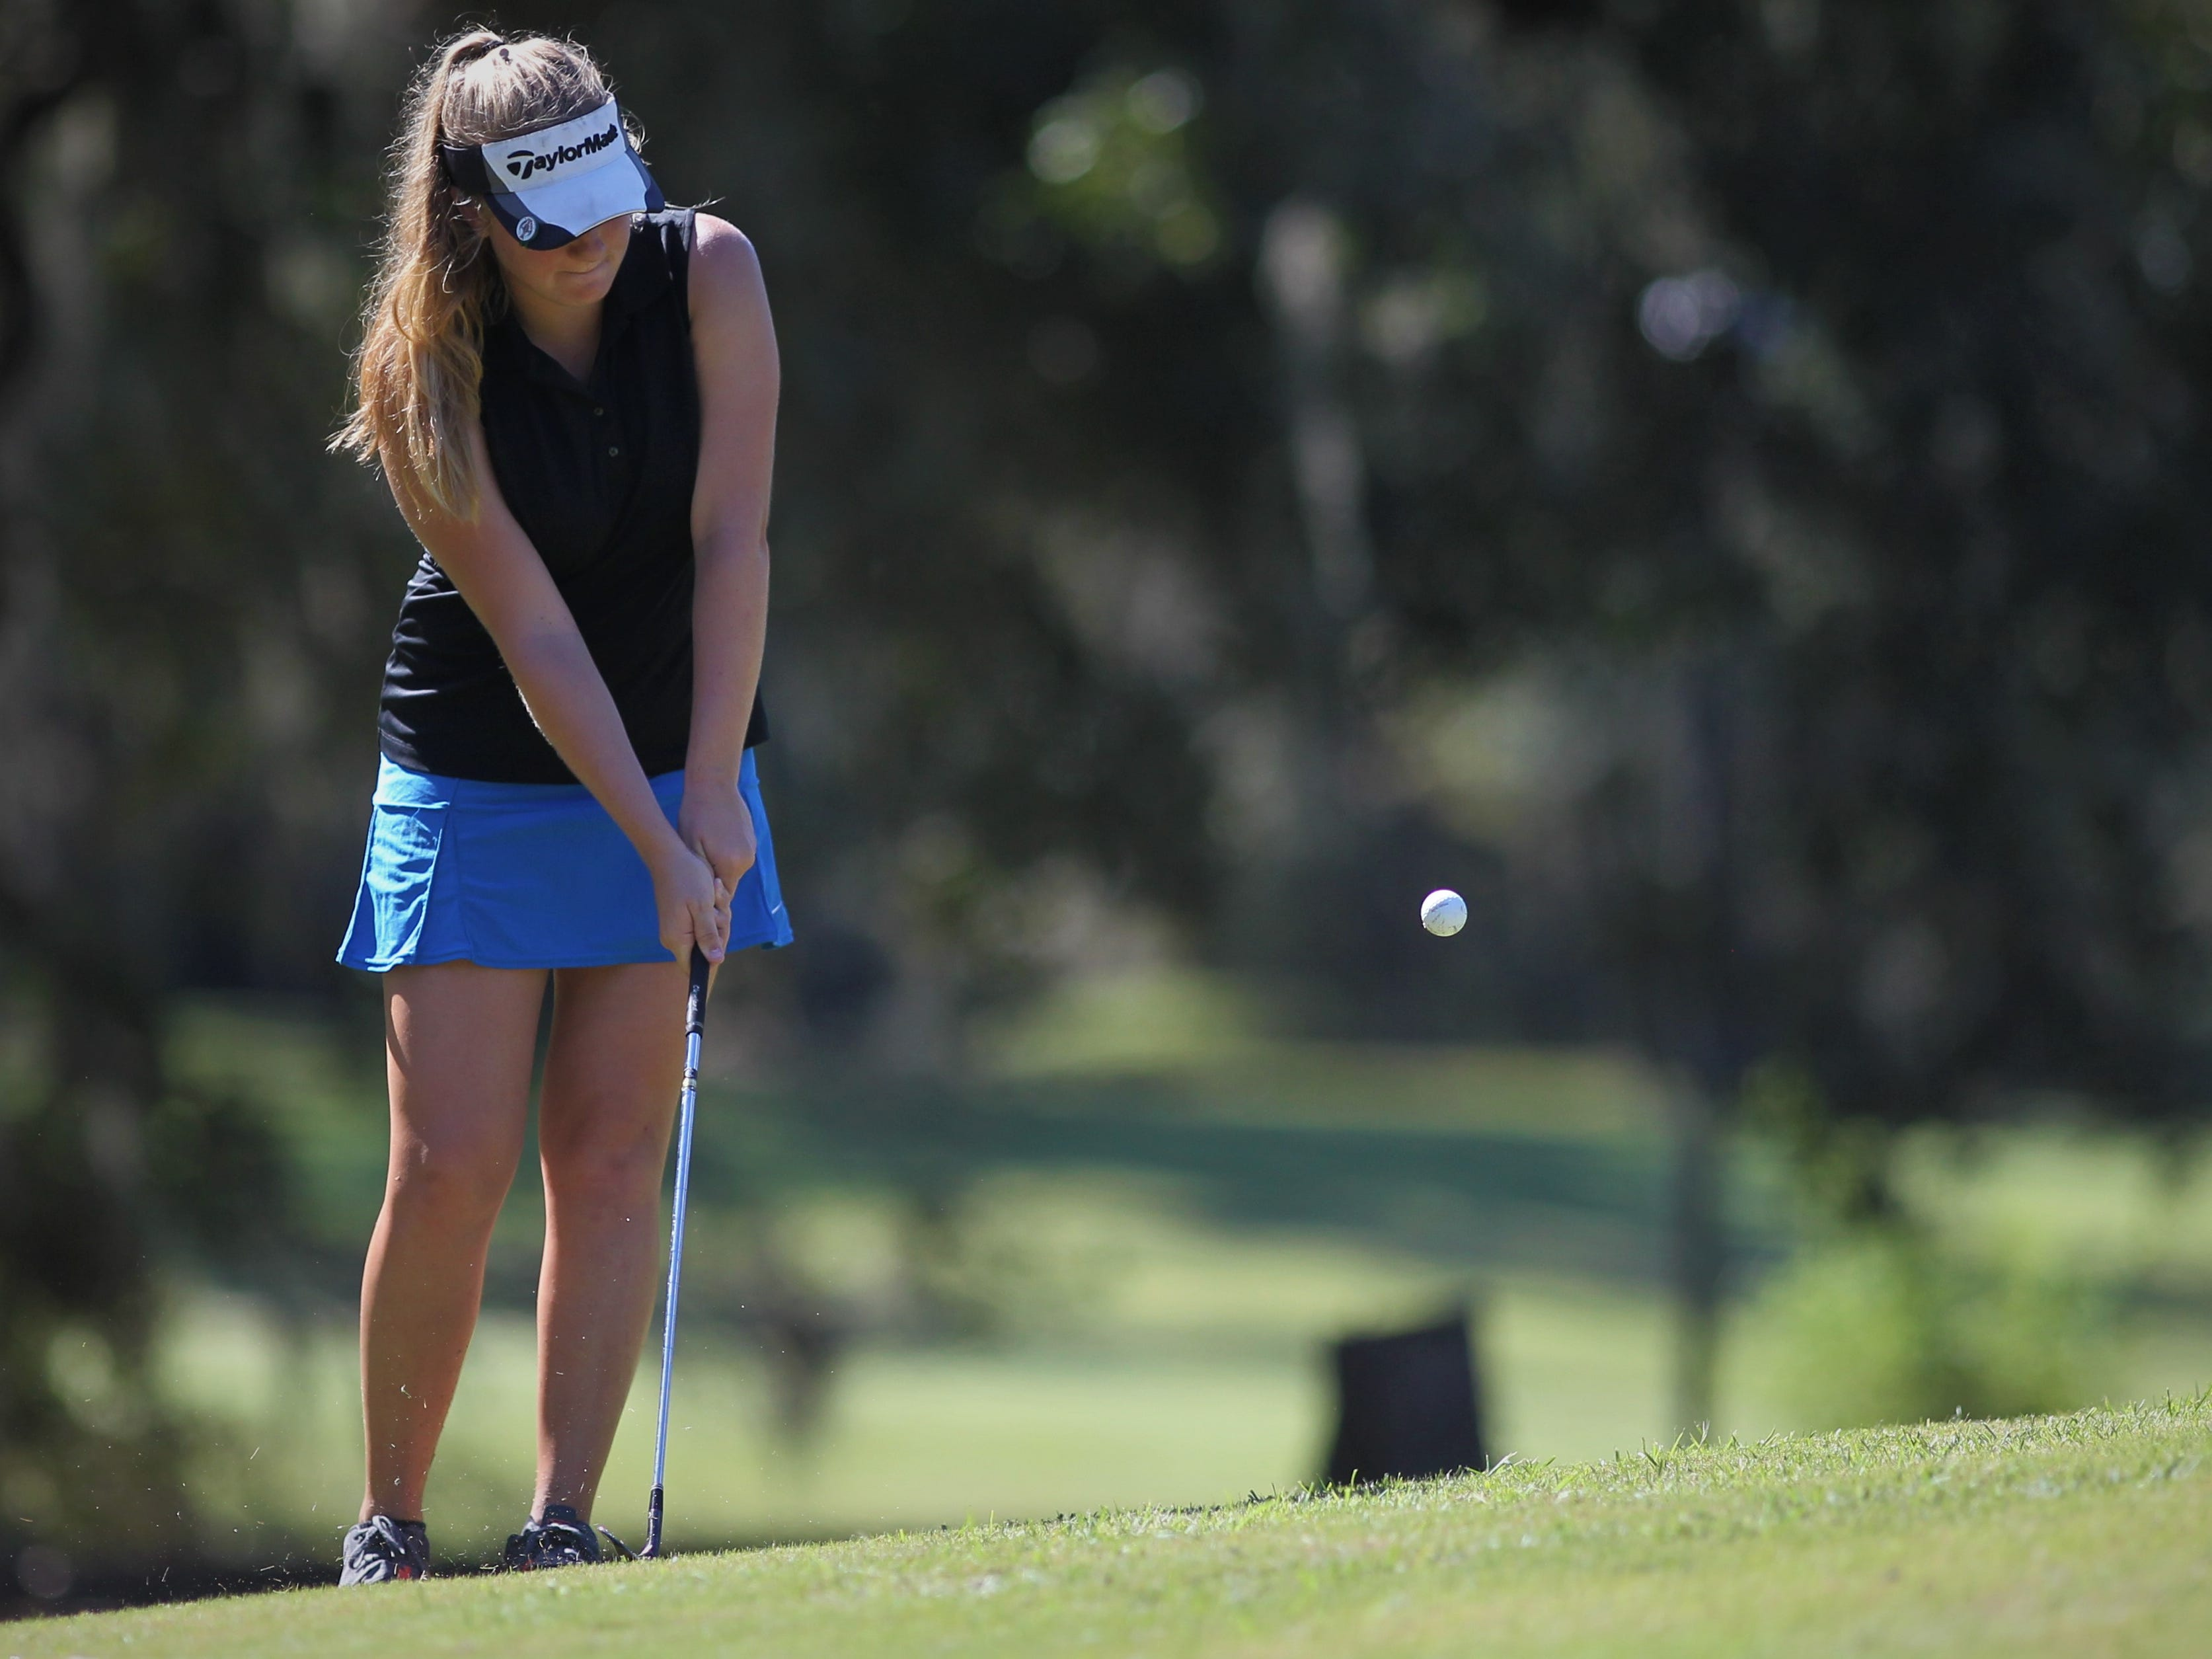 Franklin County senior Melanie Collins chips onto the green during the girls golf Panhandle Invitational at Killearn Country Club, Oct. 4, 2018.